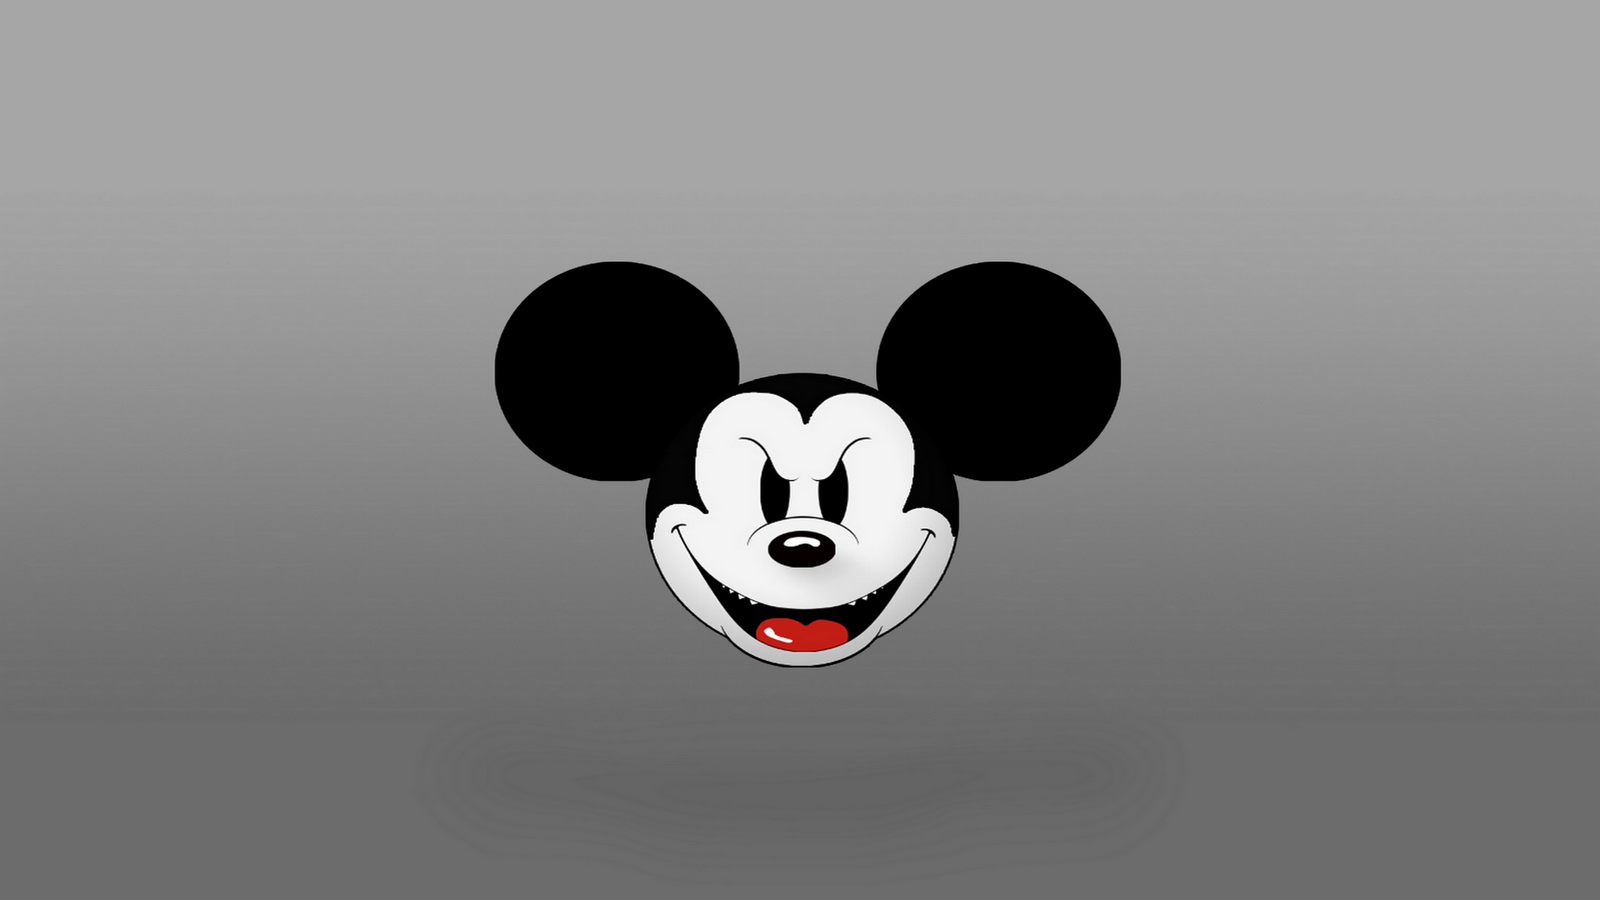 Wallpapers Photo Art: Mickey Mouse Backgrounds